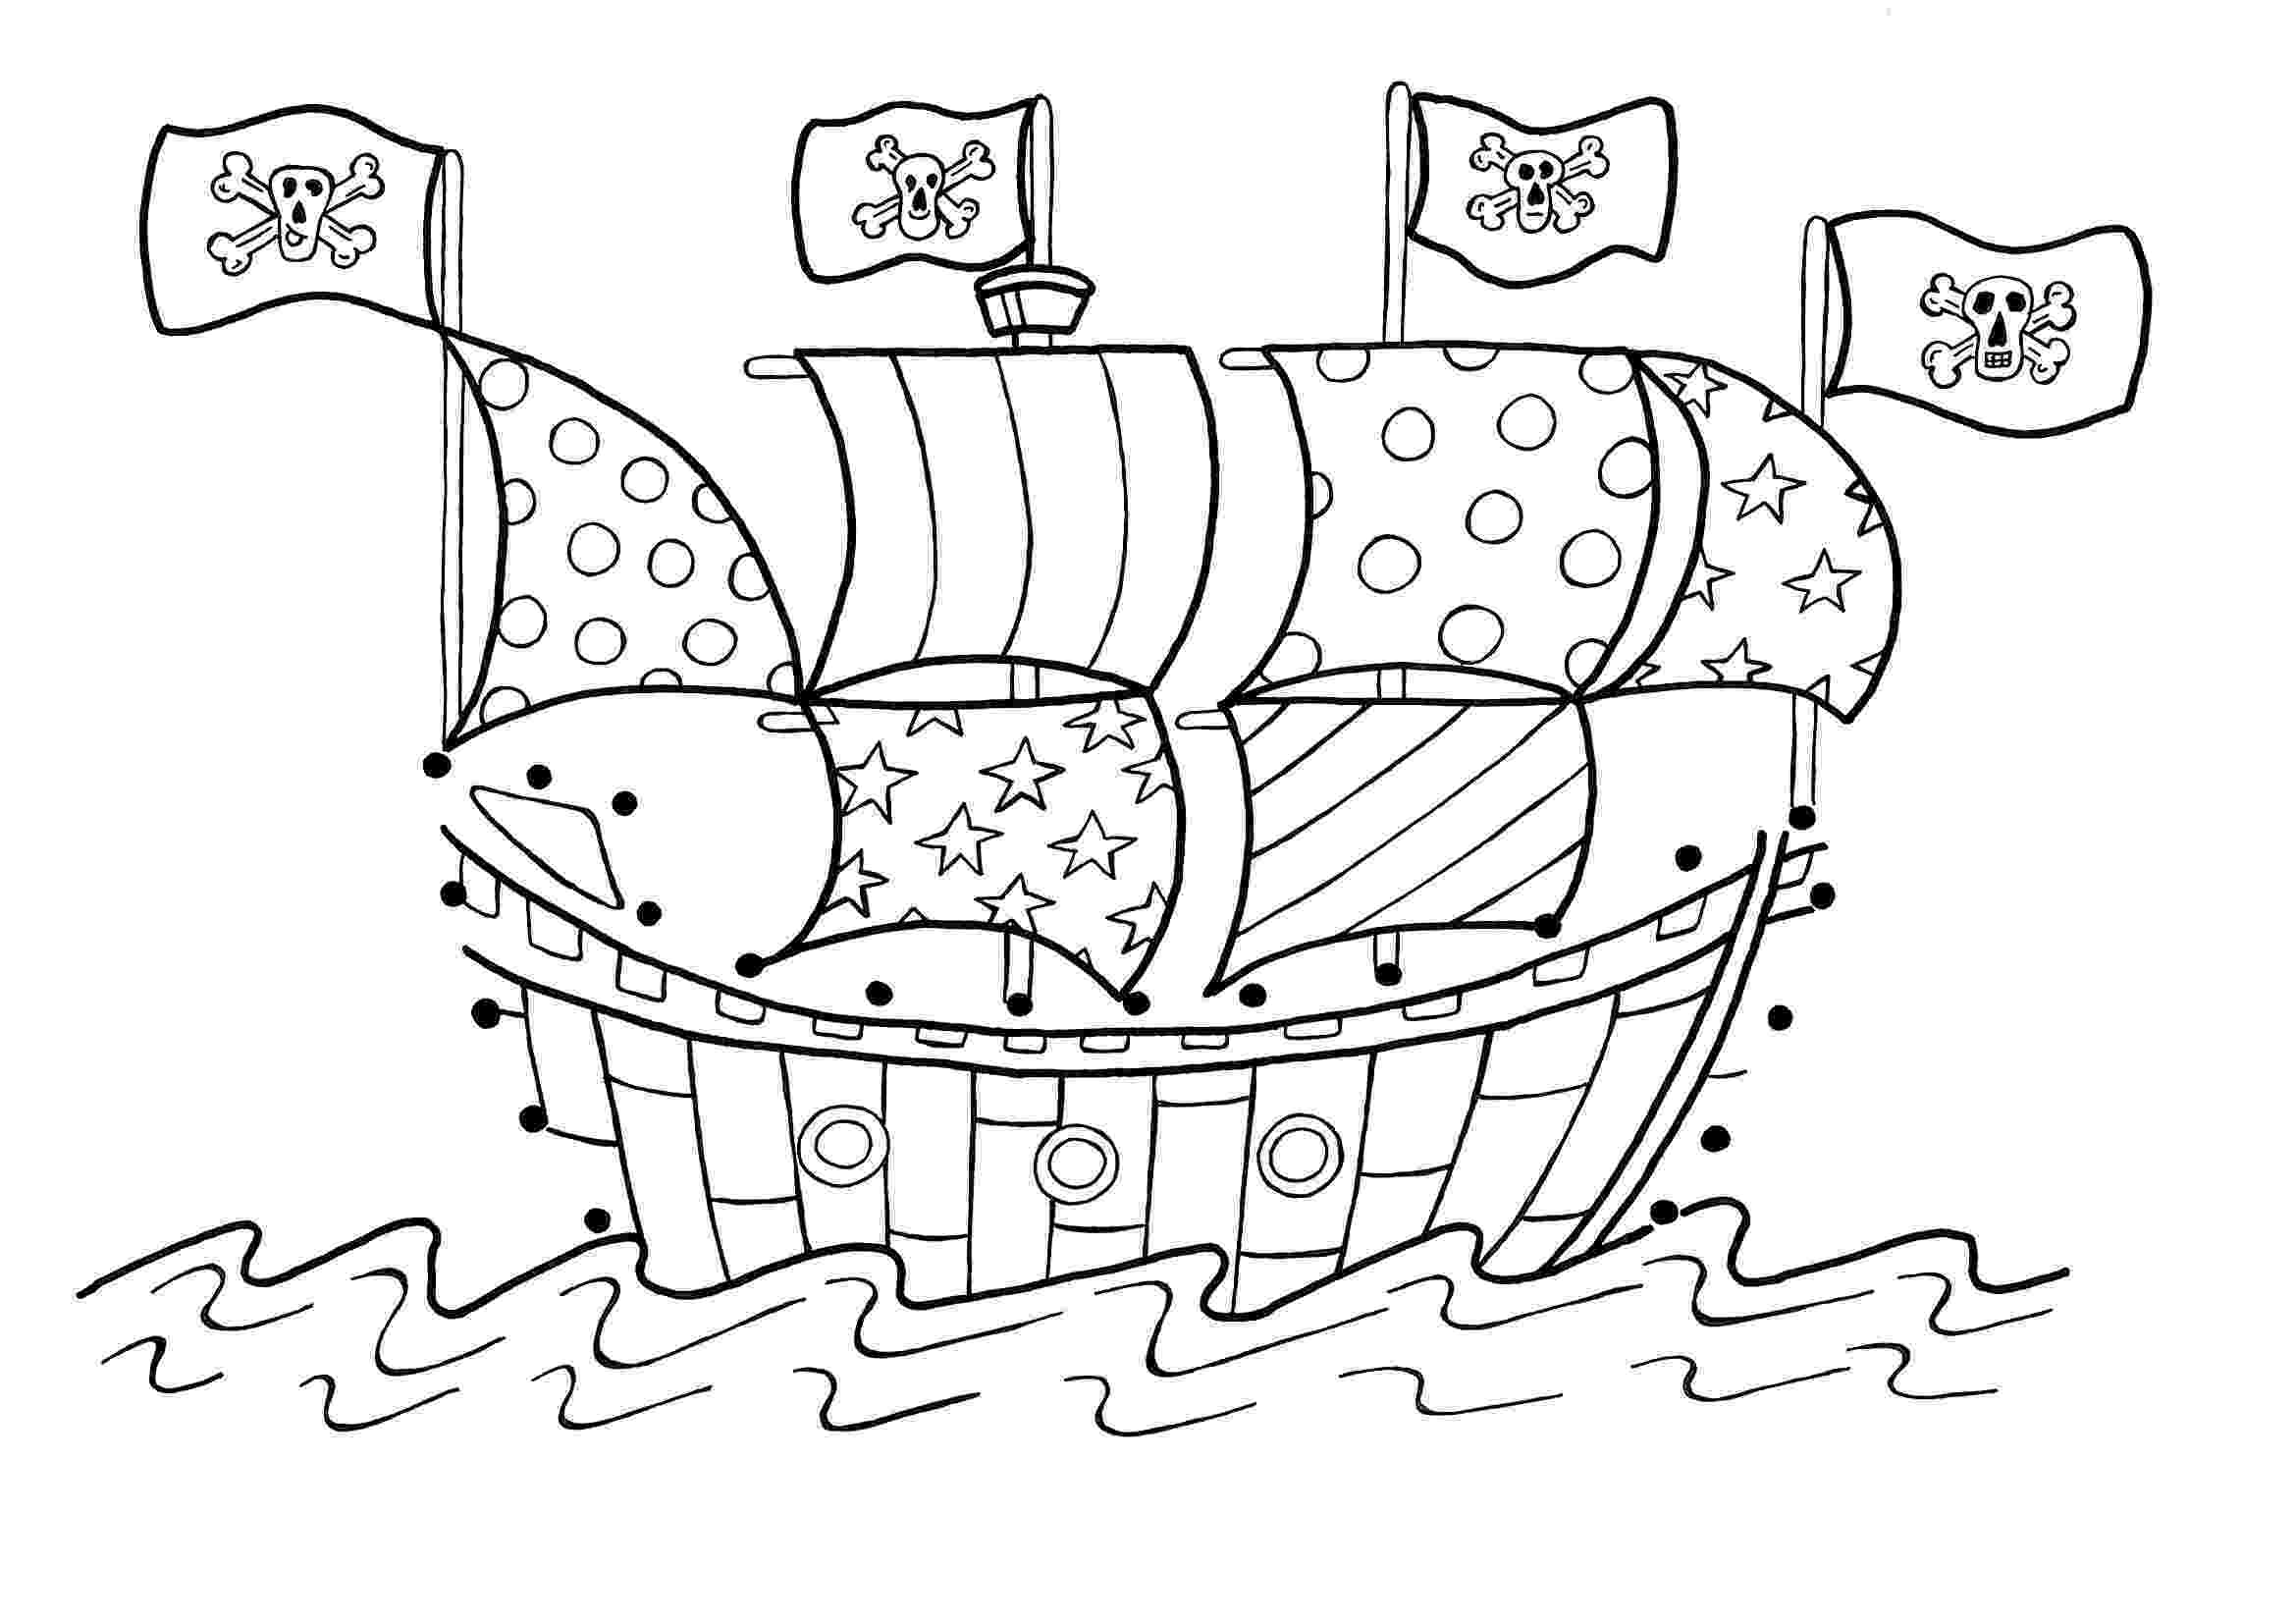 pirate coloring pages for kids pirate coloring pages hellokidscom for pirate kids coloring pages